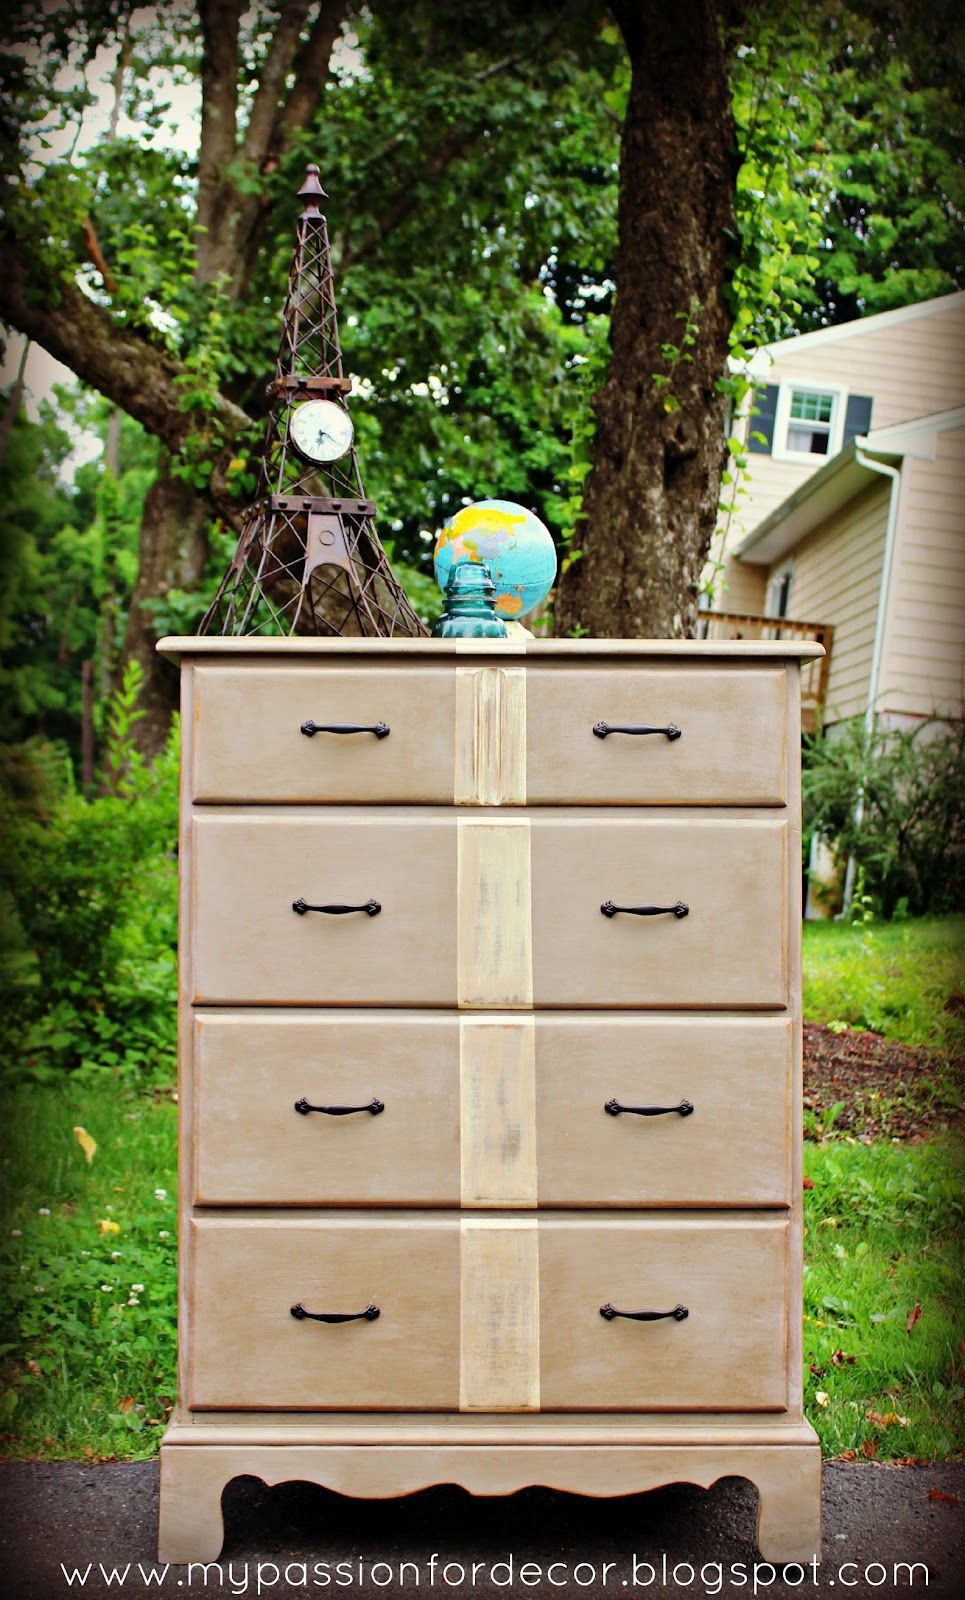 My Passion For Decor: Feeling Stripey...A Dresser For Dylan